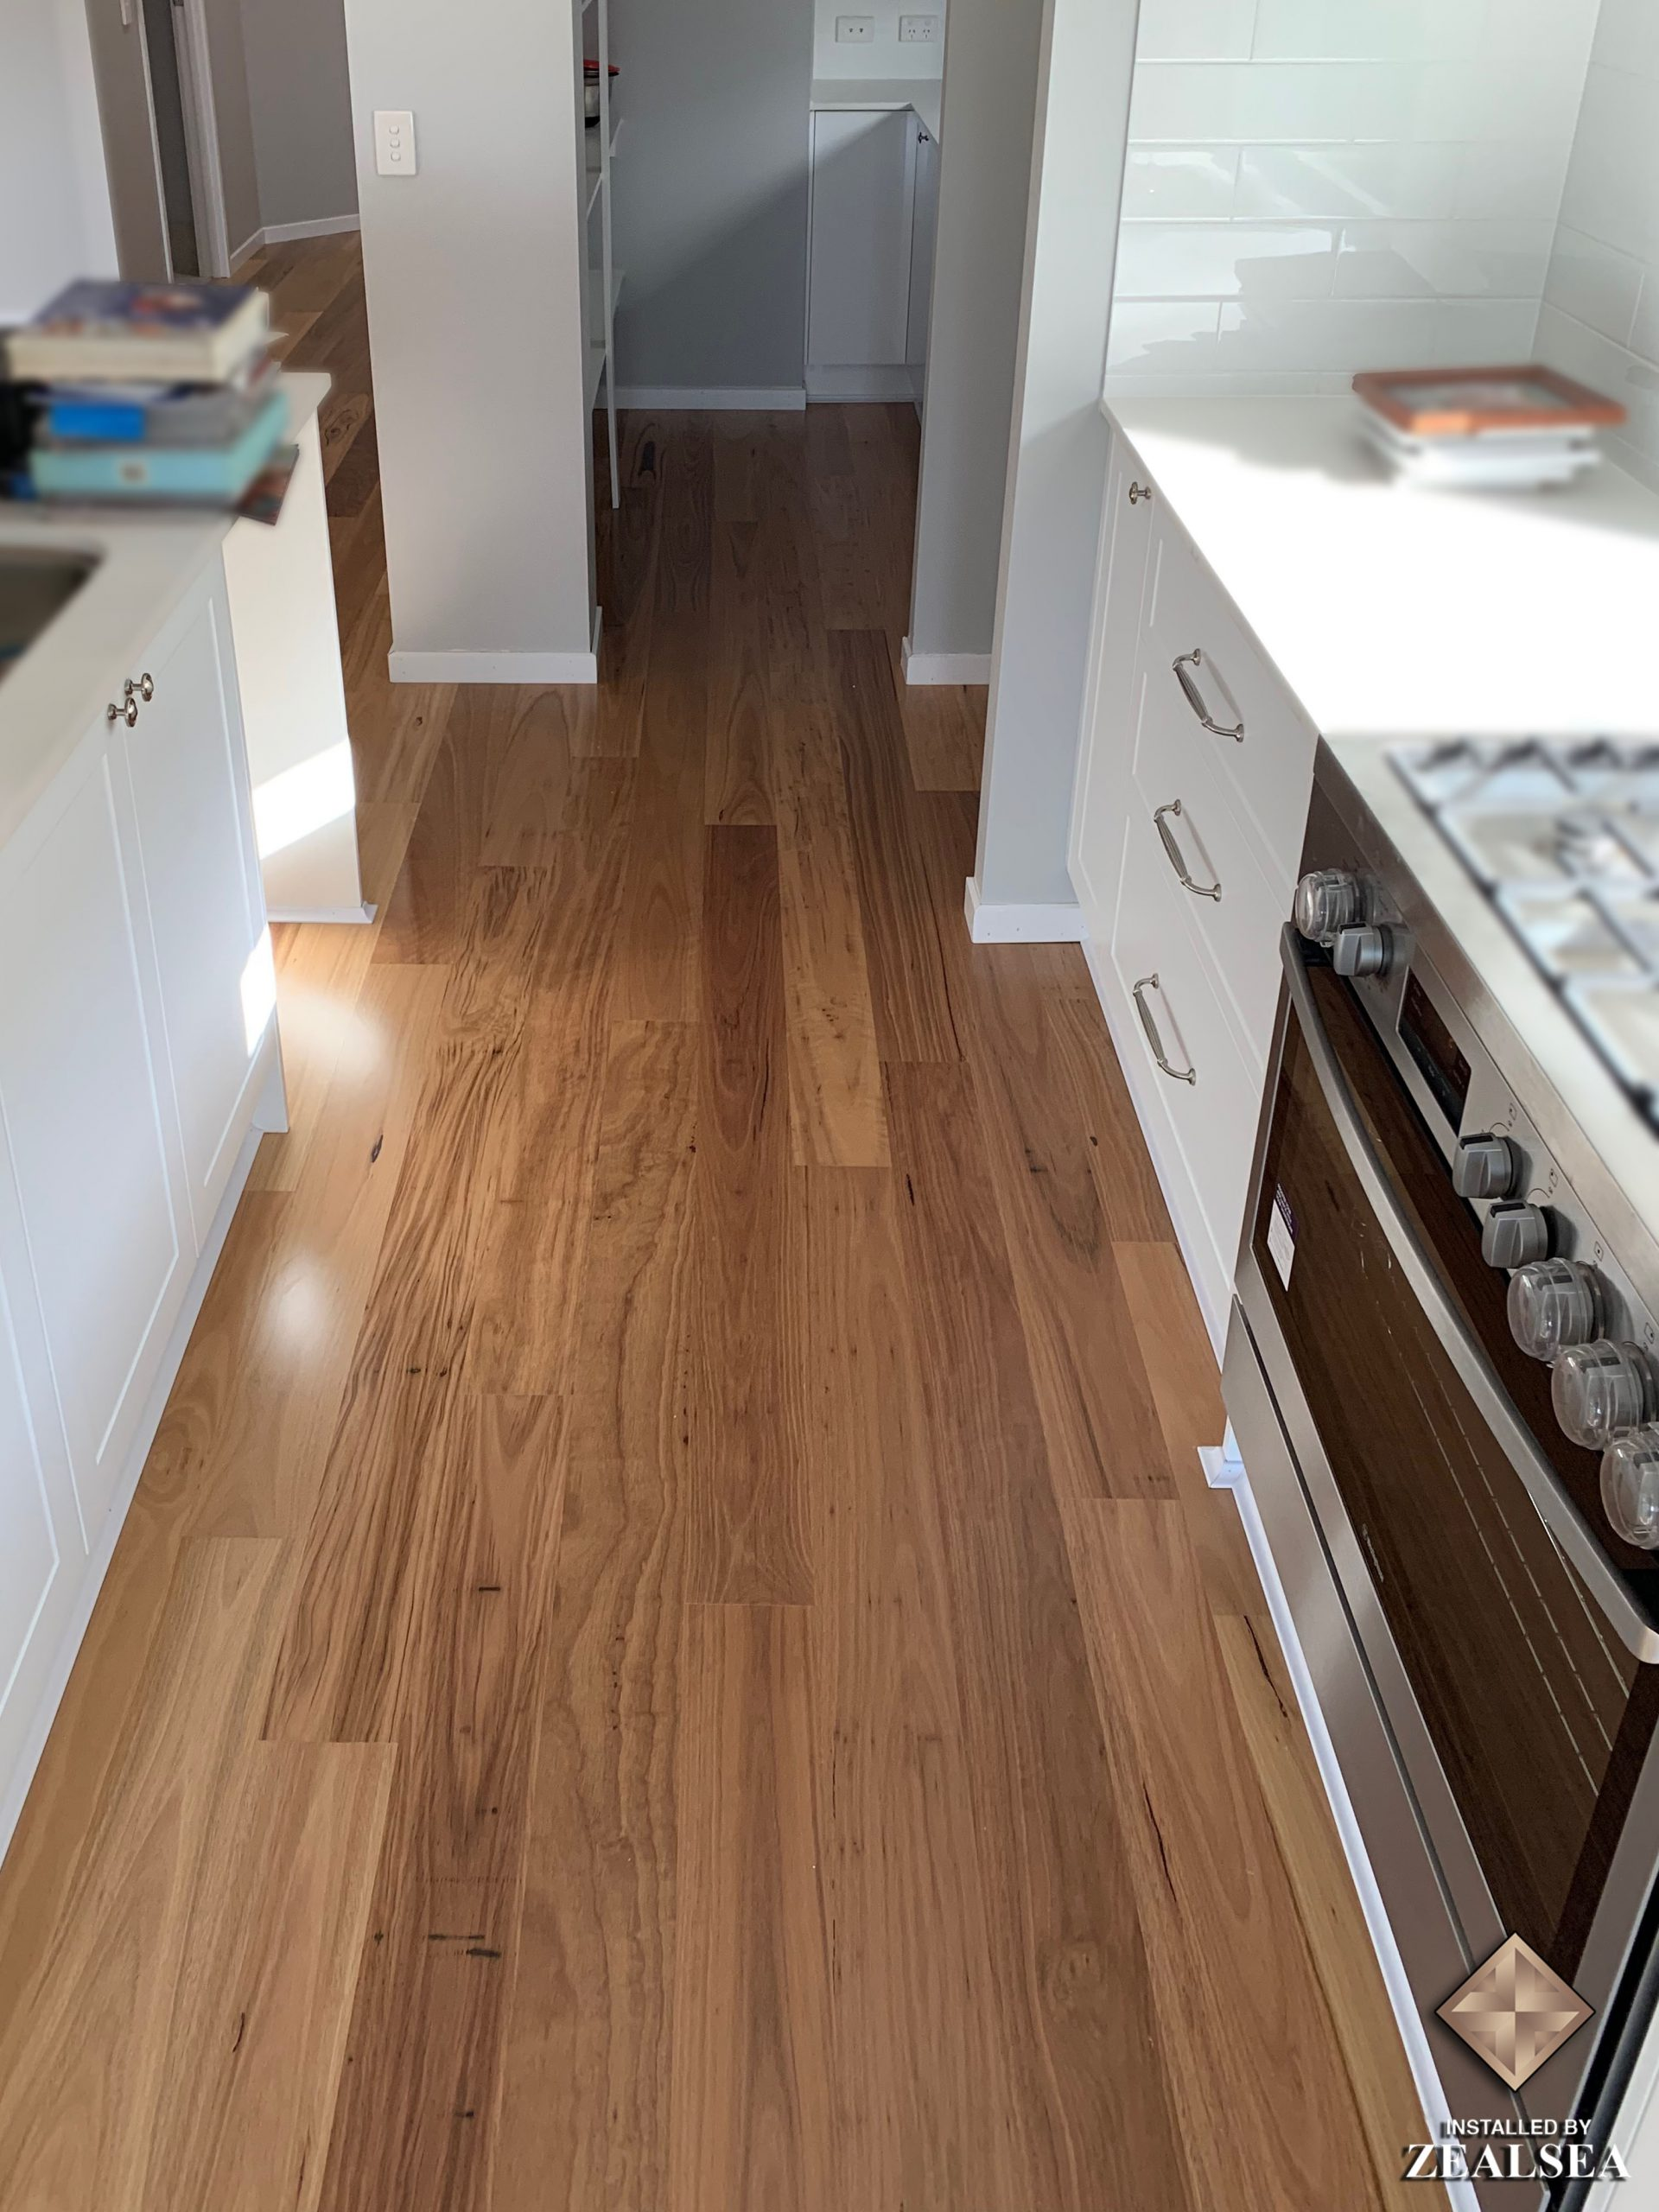 zealsea timber flooring professional installation oxley boral blackbutt 5 scaled